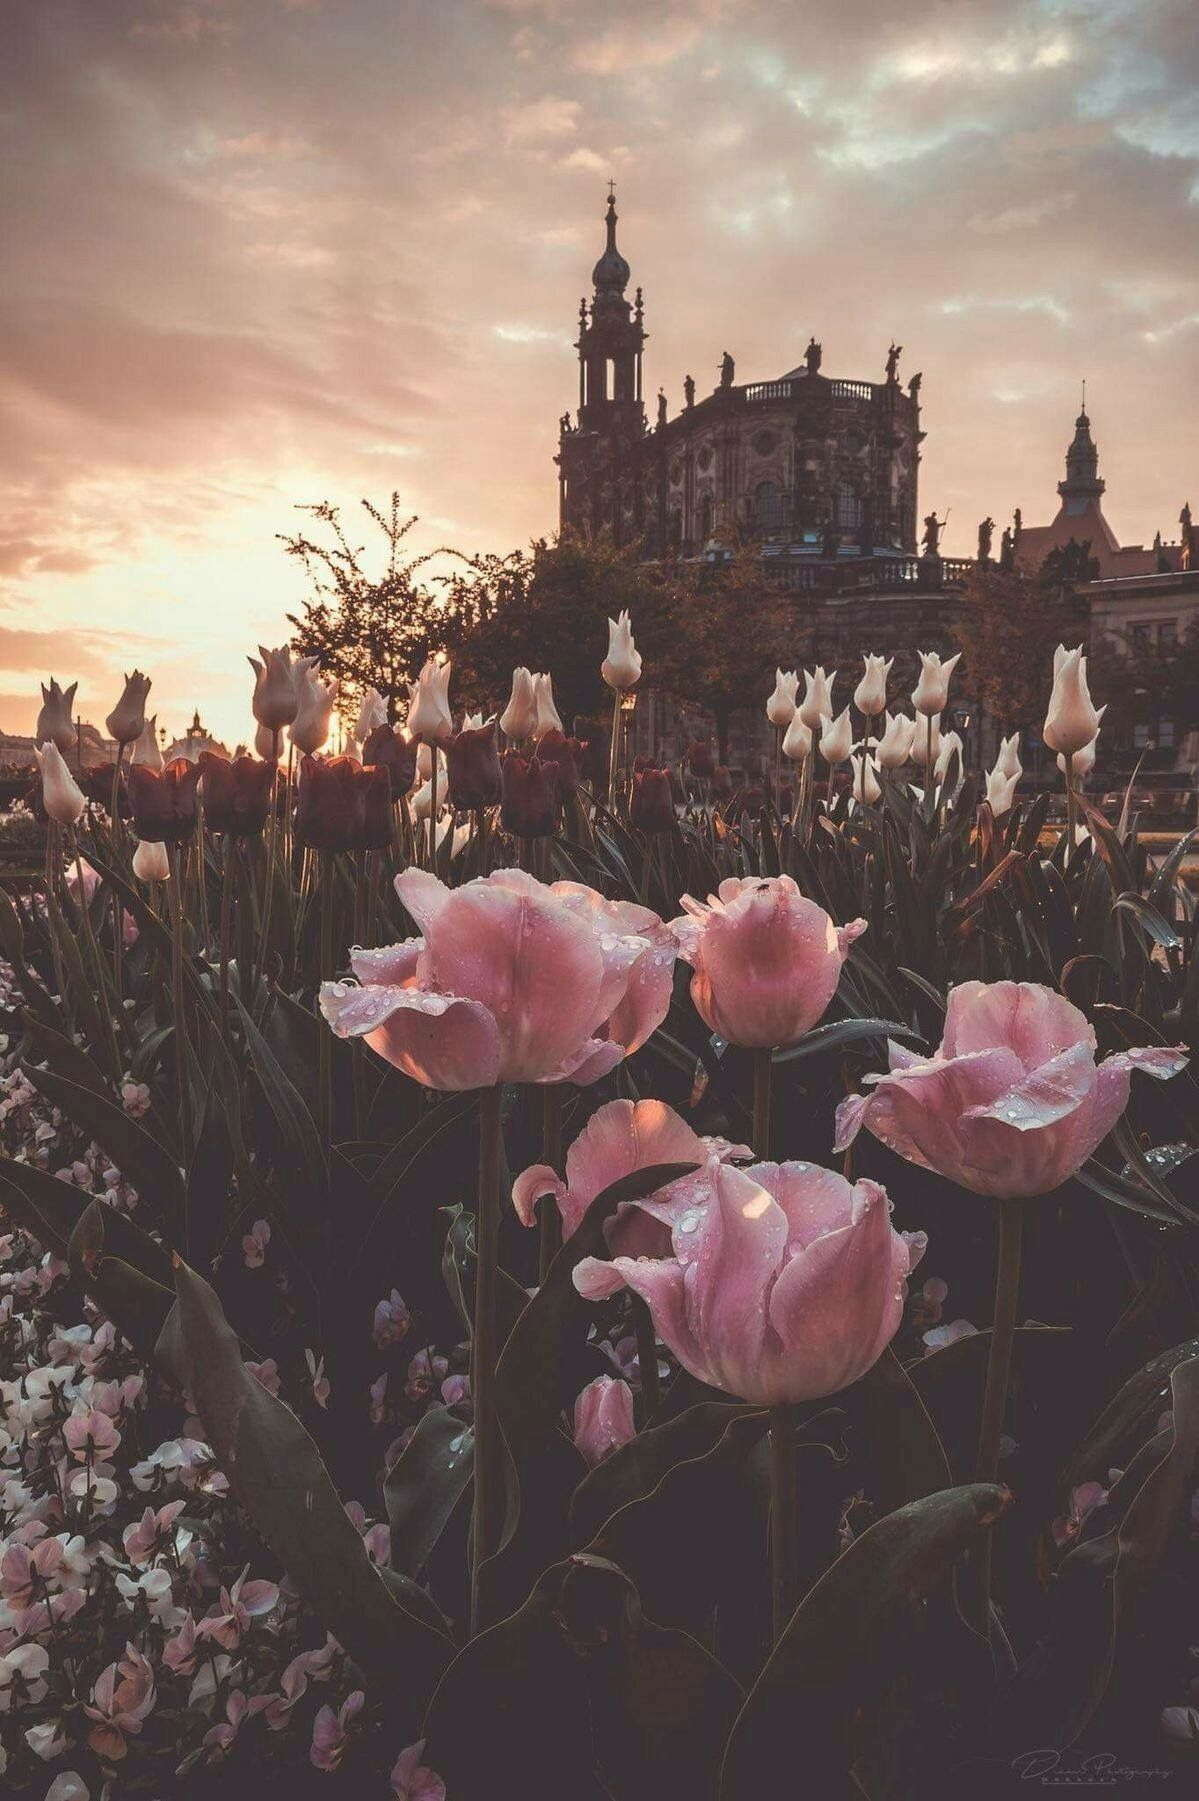 Pin By Alexis Sullivan On Cute Things And Places Landscape Wallpaper Beautiful Wallpapers Nature Photography Aesthetic pink wallpapers top free aesthetic pink. landscape wallpaper